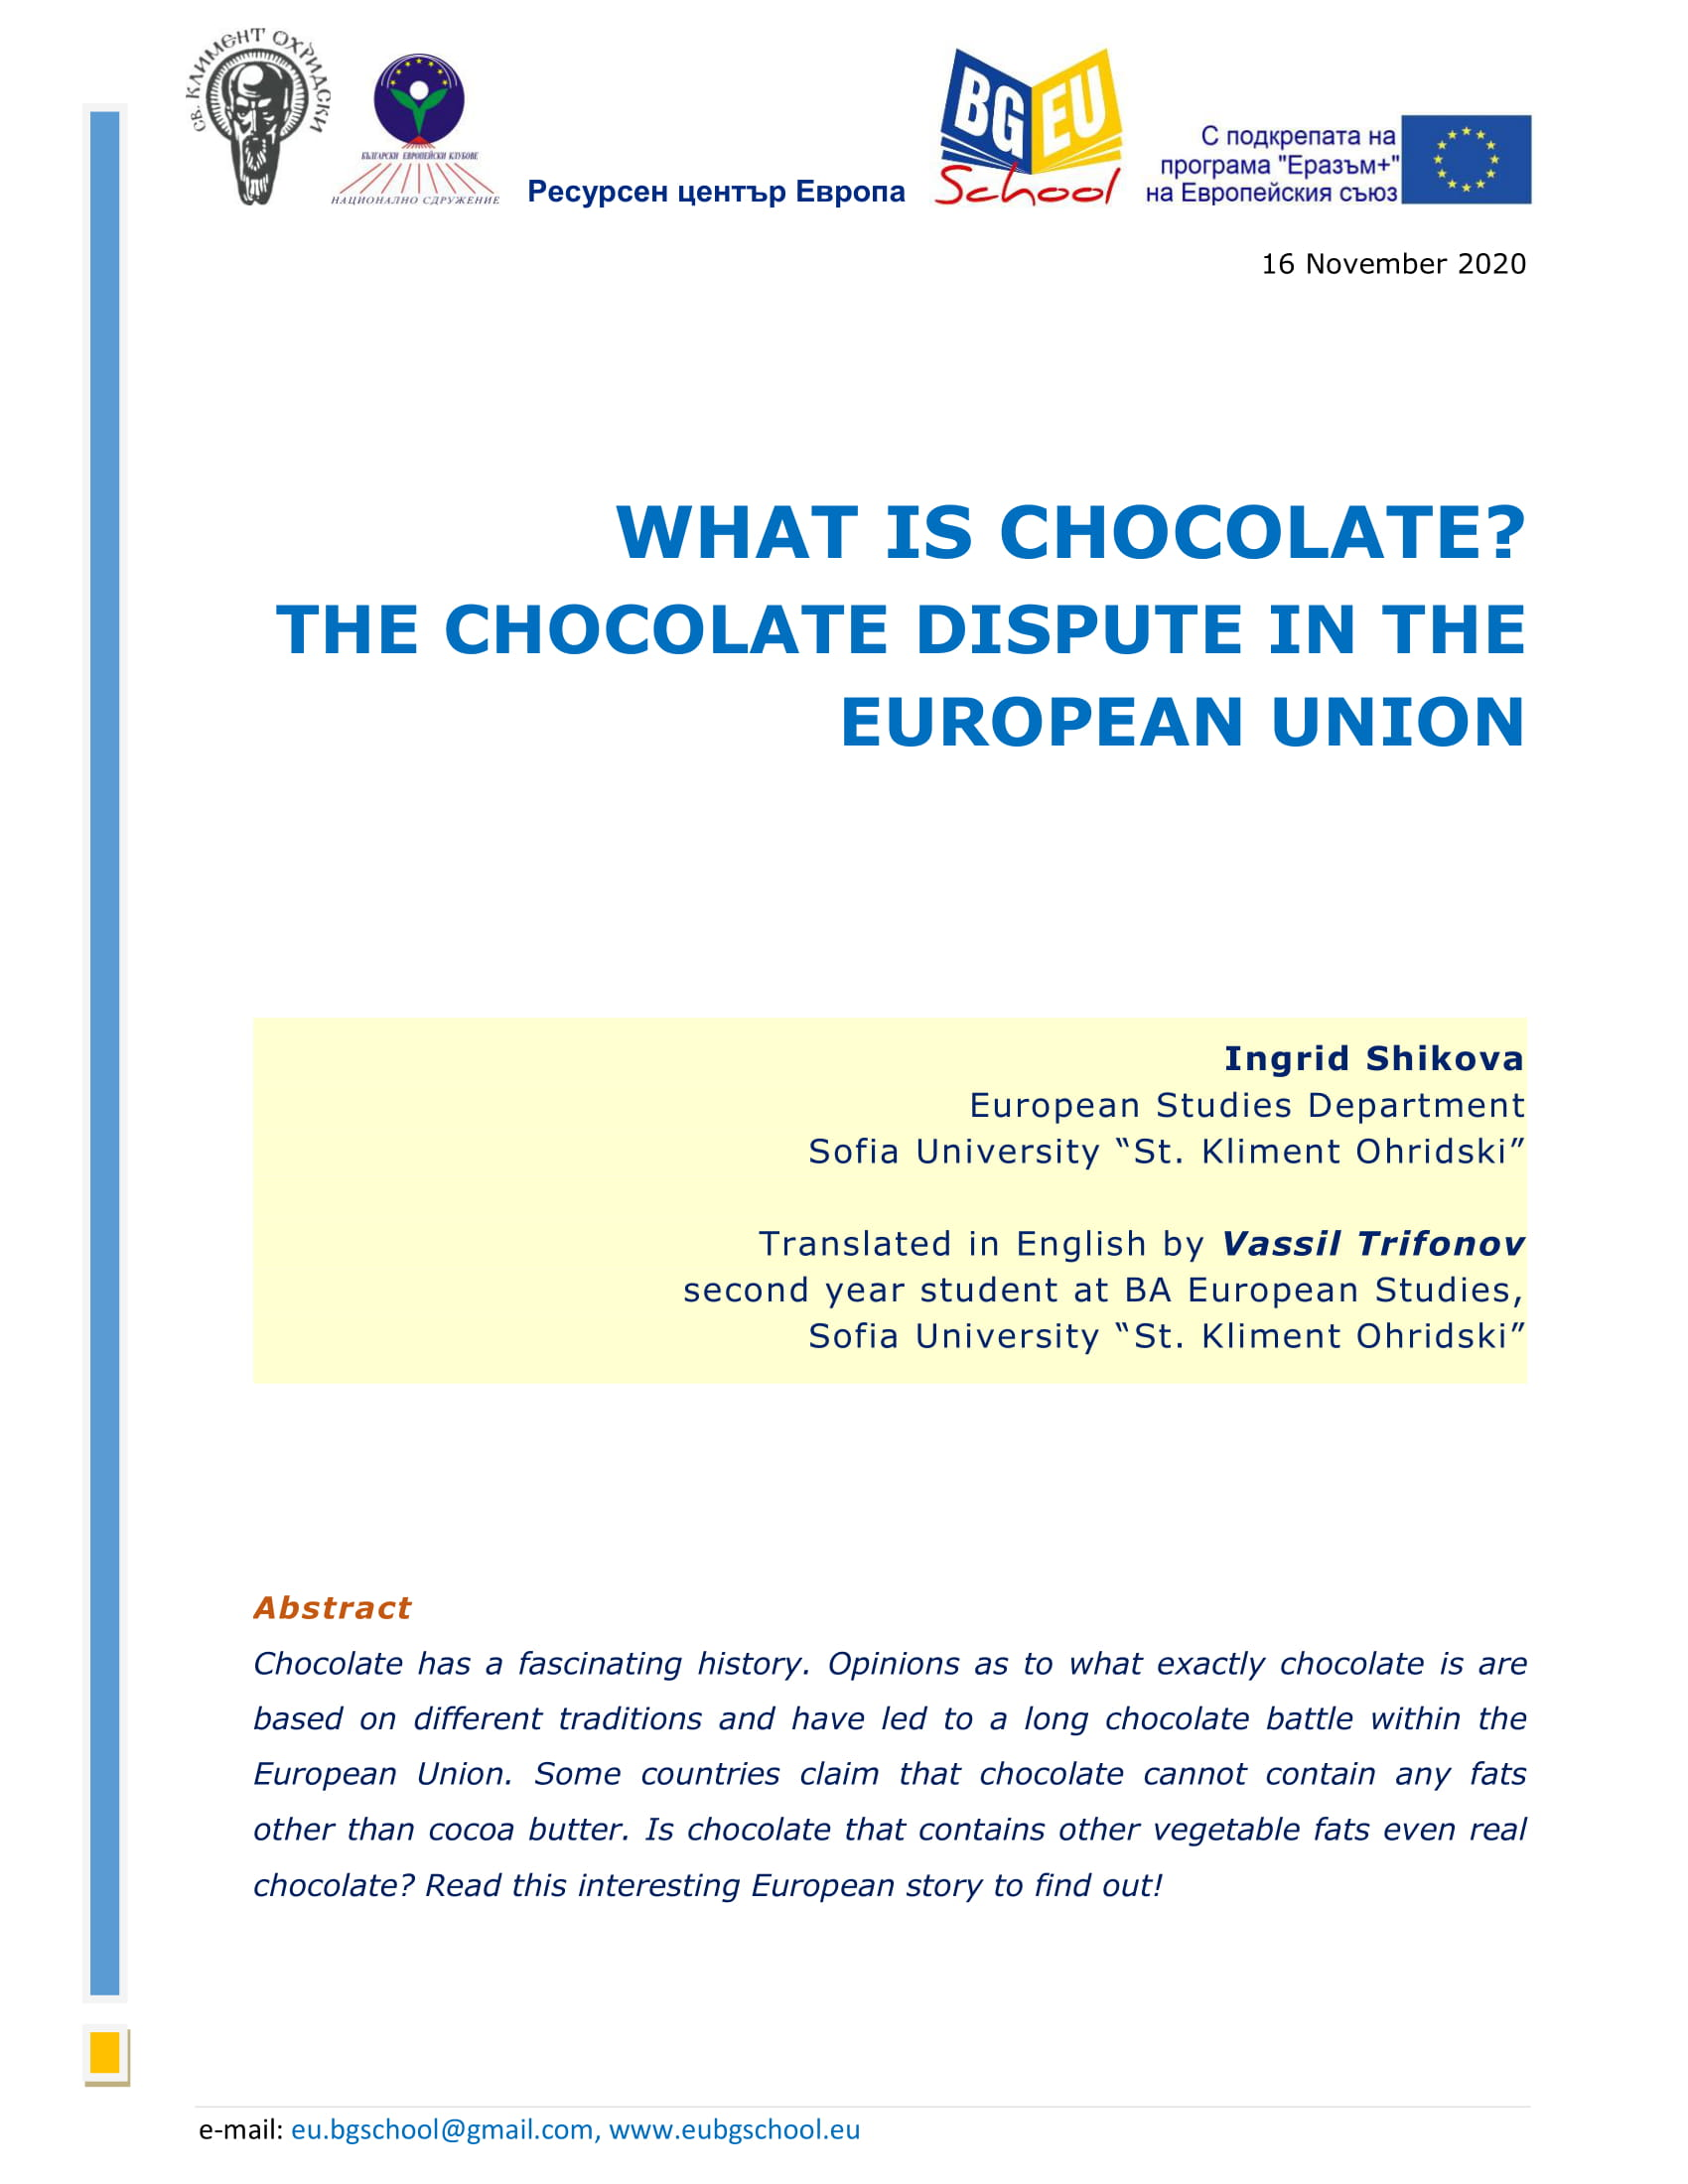 WHAT IS CHOCOLATE? THE CHOCOLATE DISPUTE IN THE EUROPEAN UNION